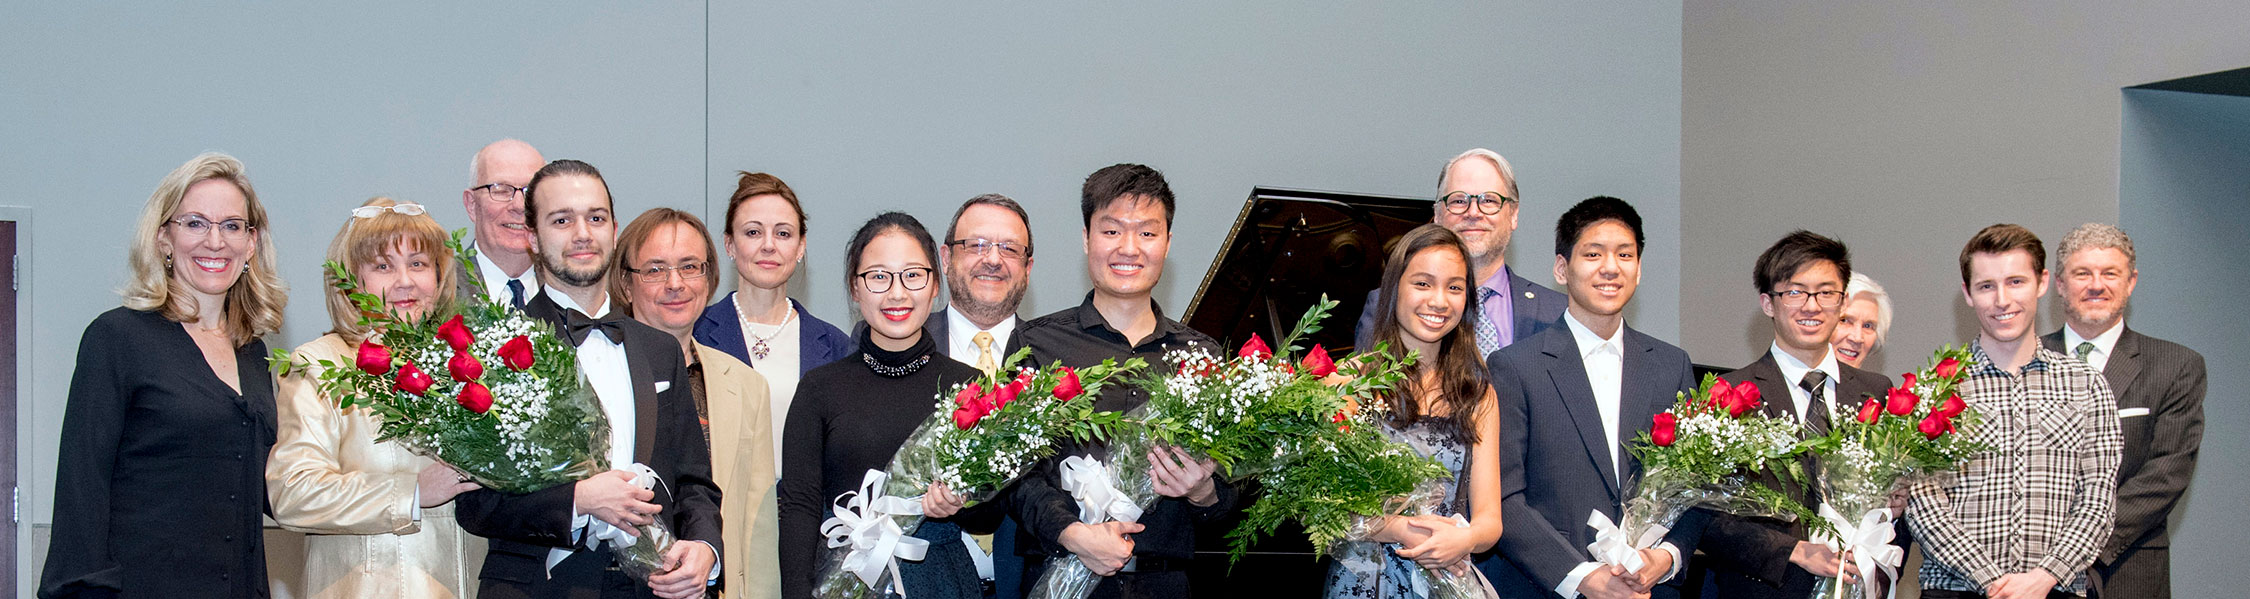 winners and jurors of the 2018 Kuleshov International Piano Festival and Competition